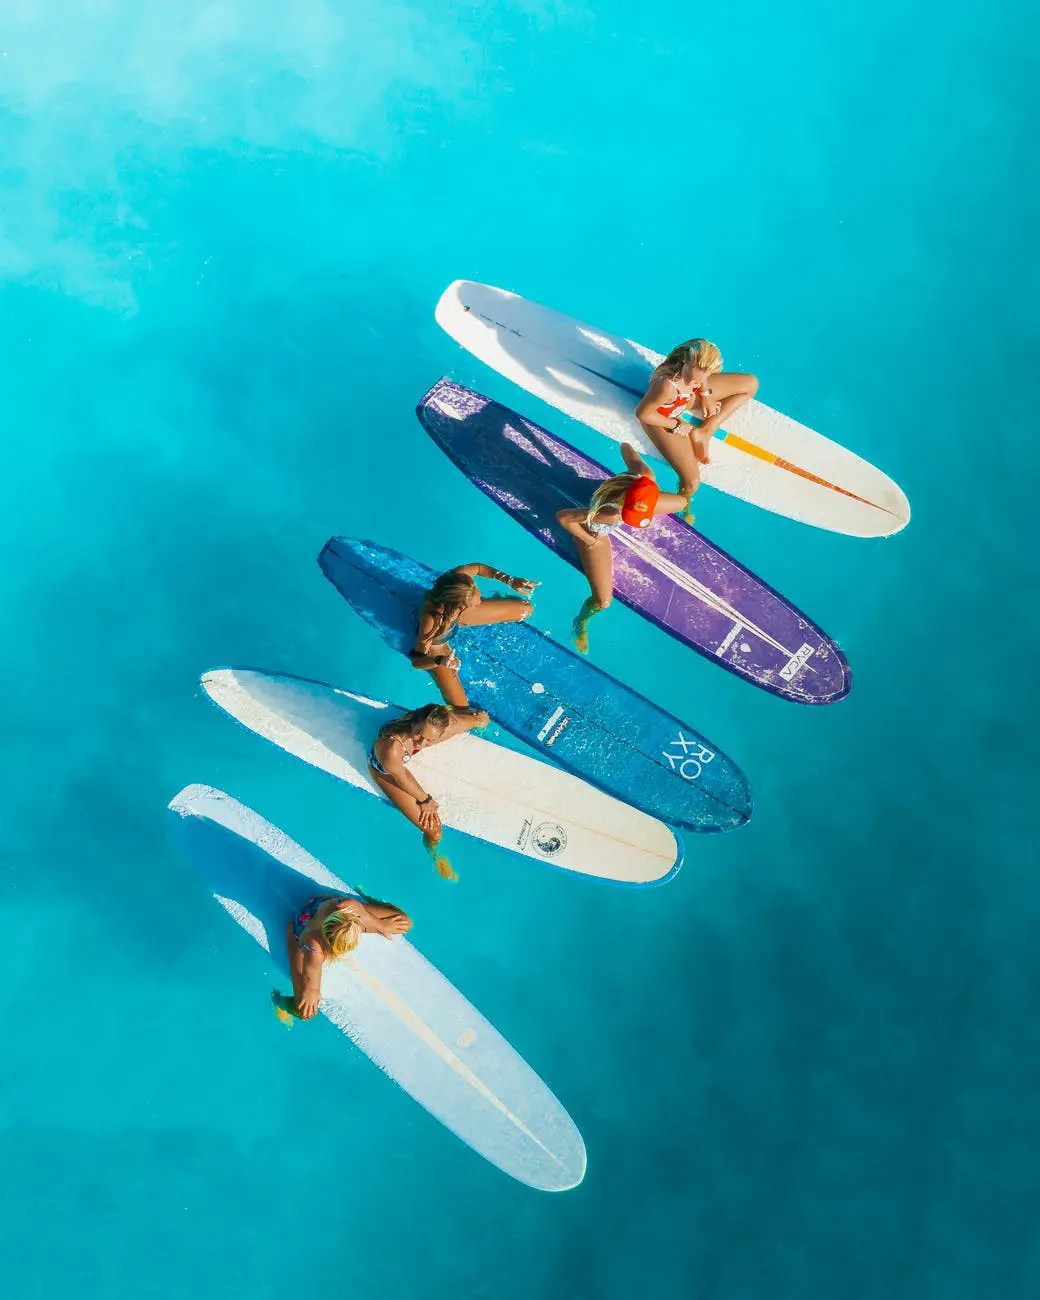 people riding on white and blue surfboard